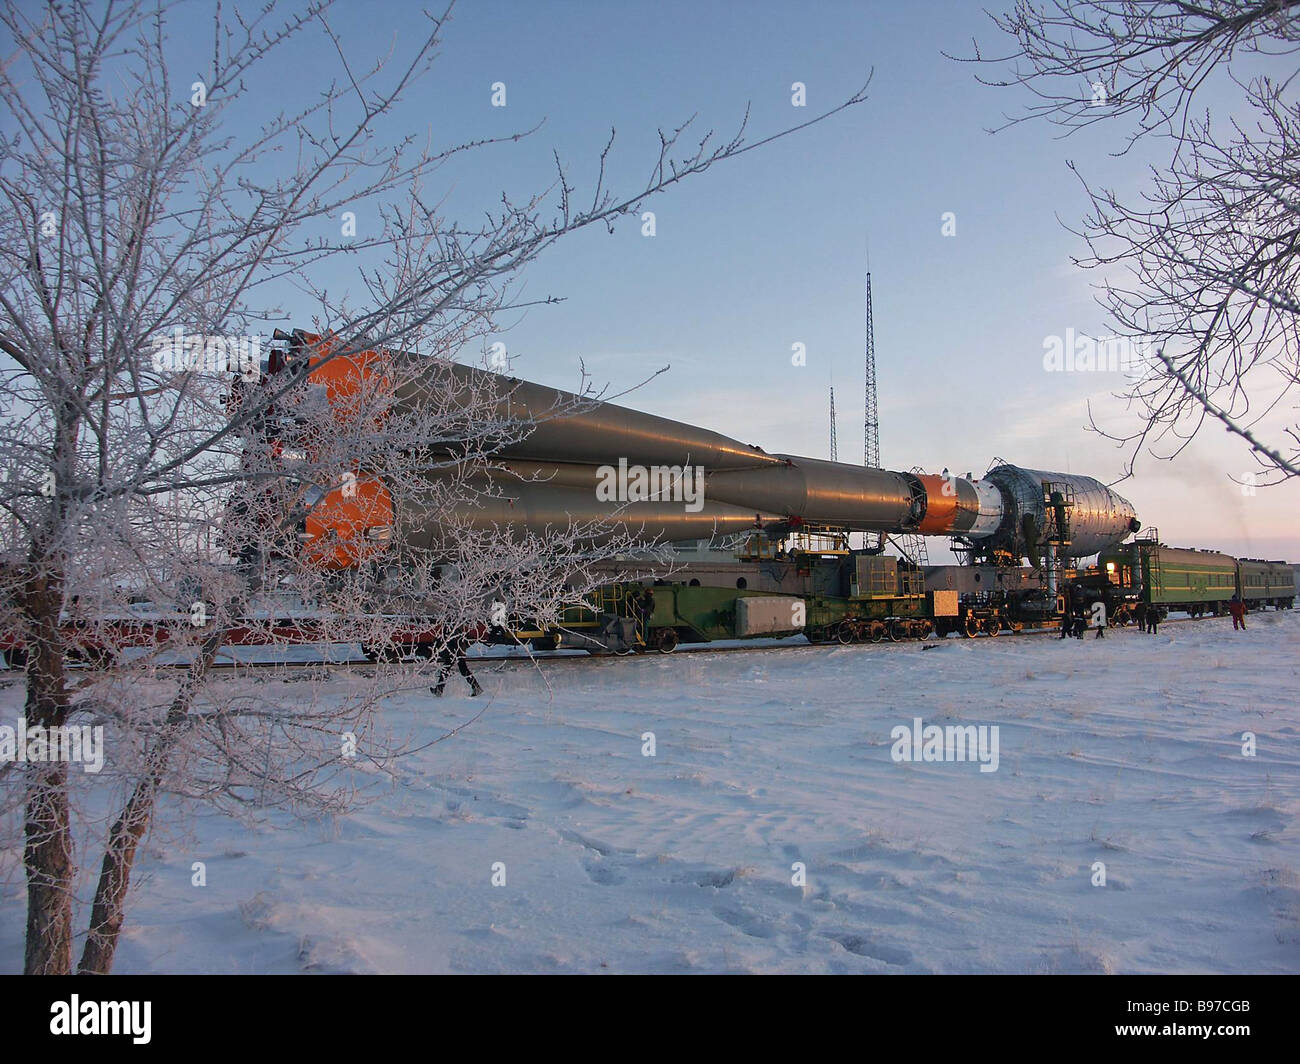 Hauling the new carrier vehicle SOYUZ 2 to the launch pad - Stock Image